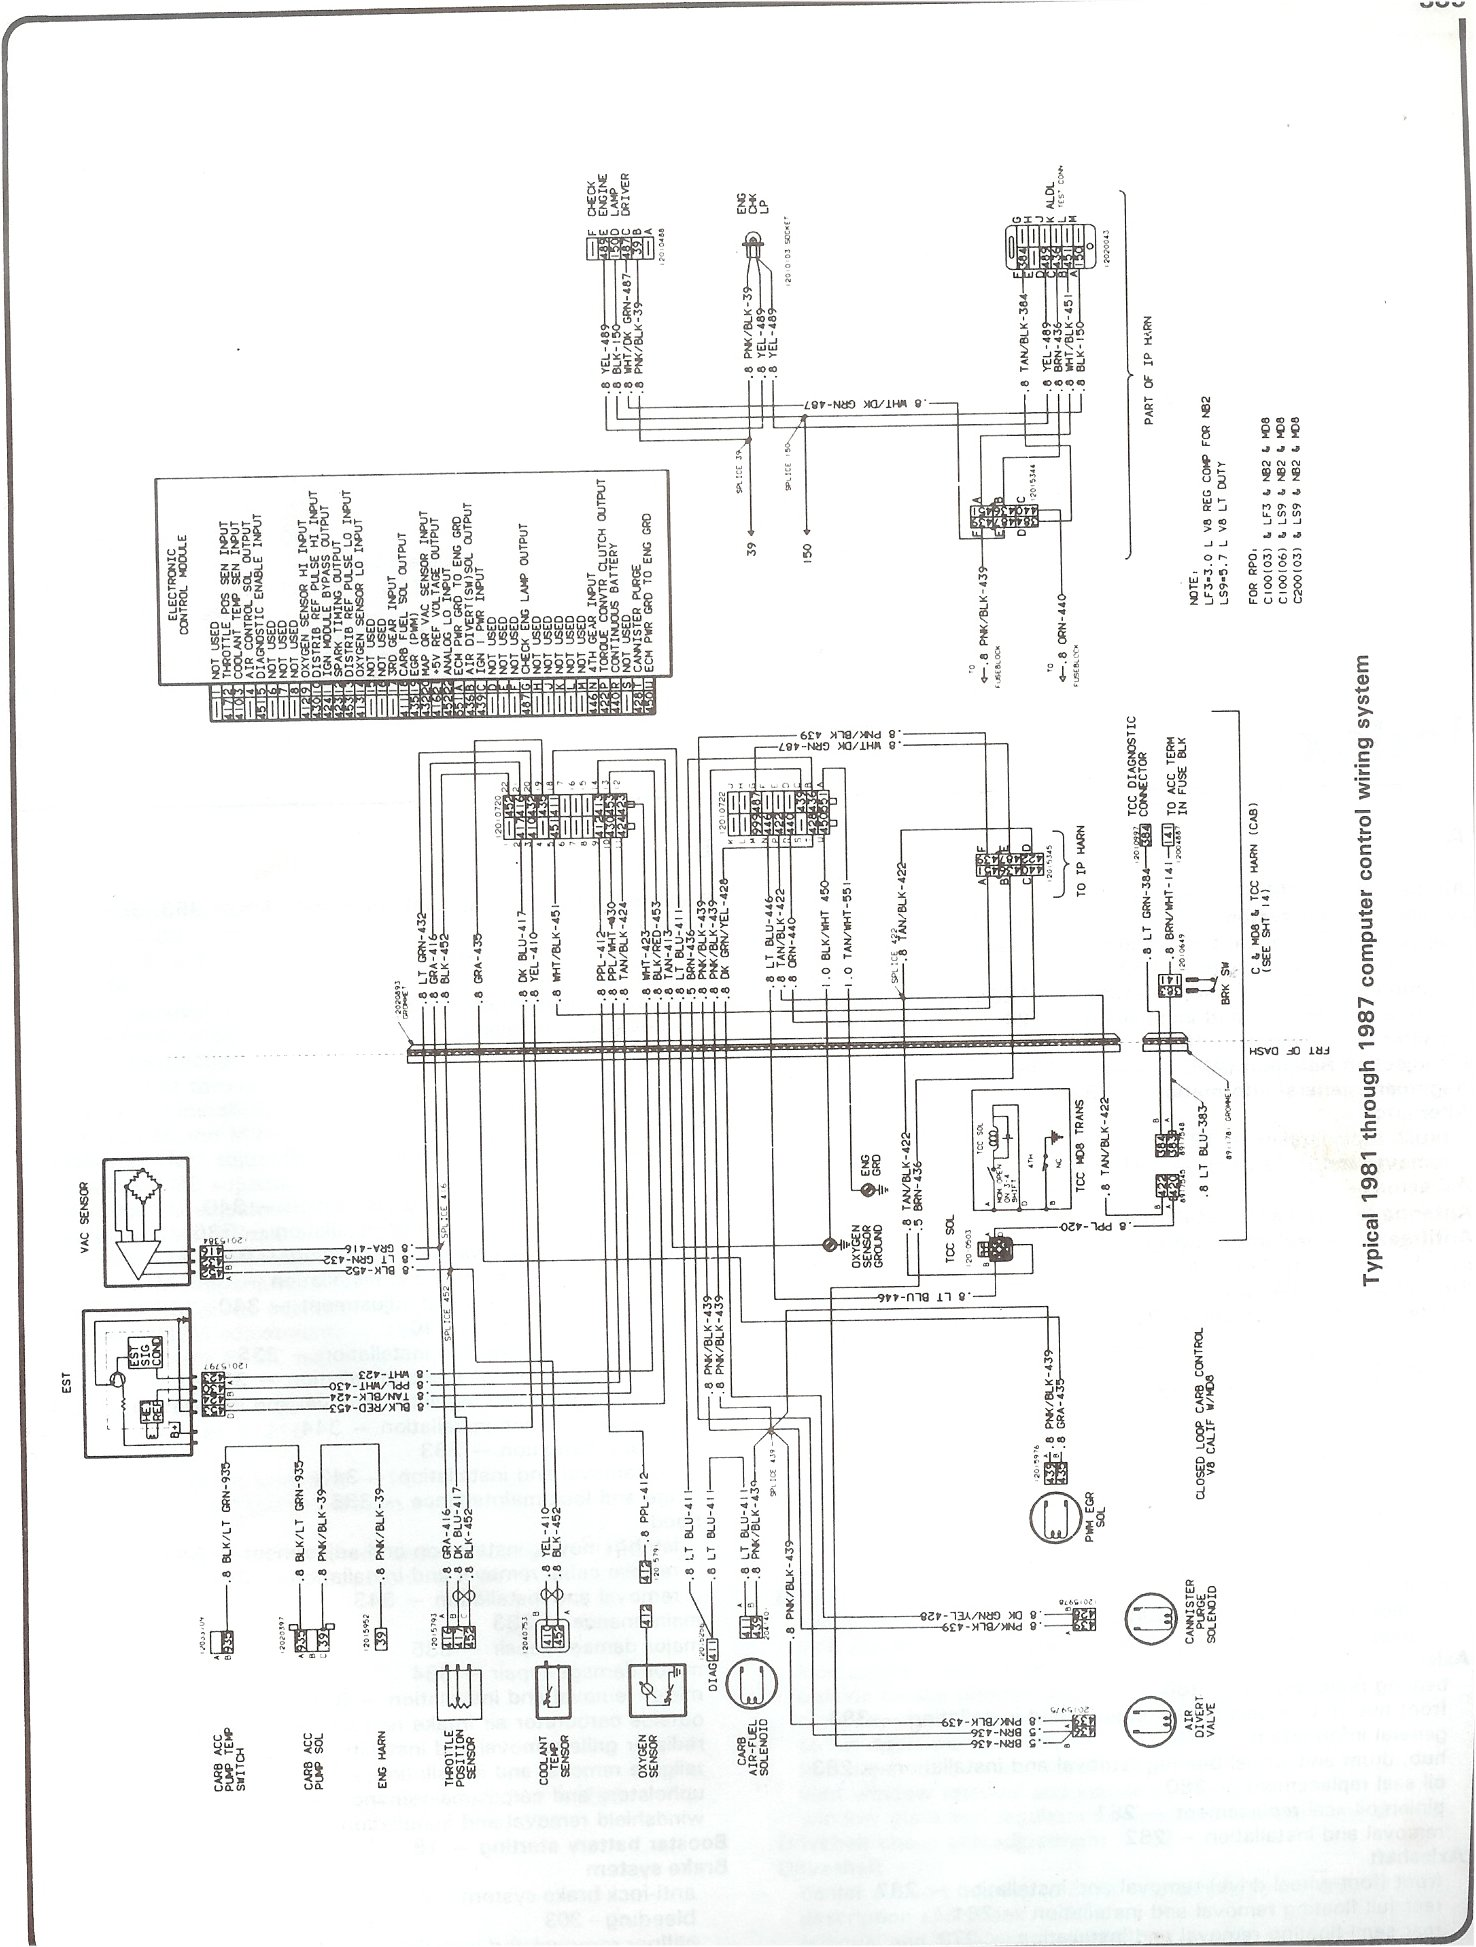 81 87_computer_control_wiring complete 73 87 wiring diagrams 1998 chevy blazer instrument cluster wiring diagram at reclaimingppi.co